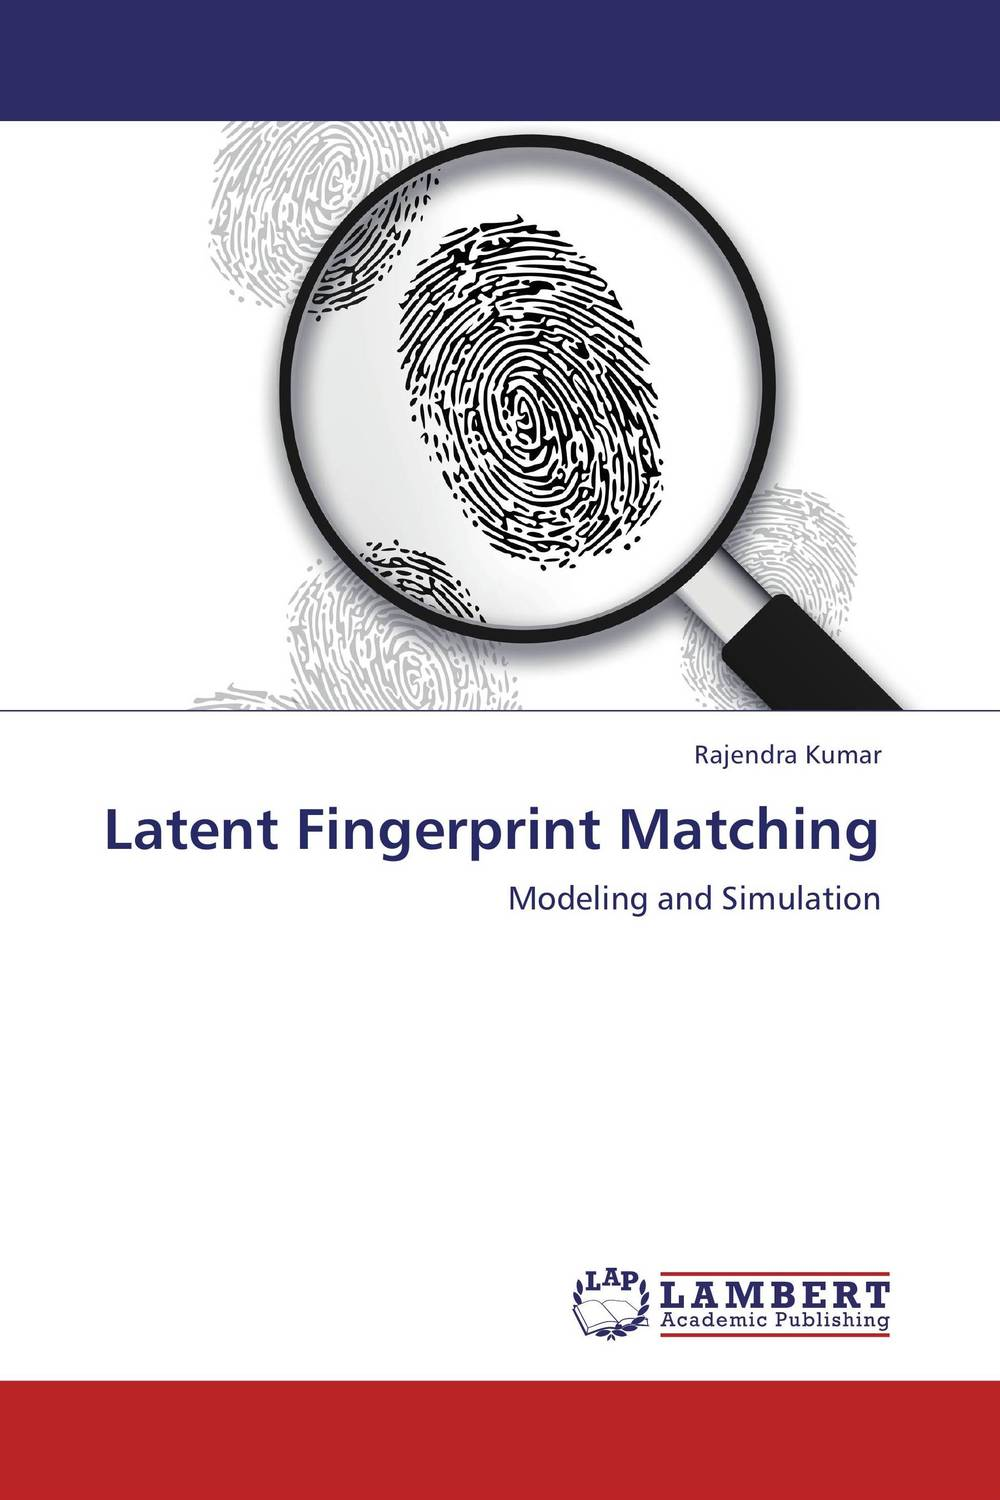 Latent Fingerprint Matching feature extraction and classification methods of texture images